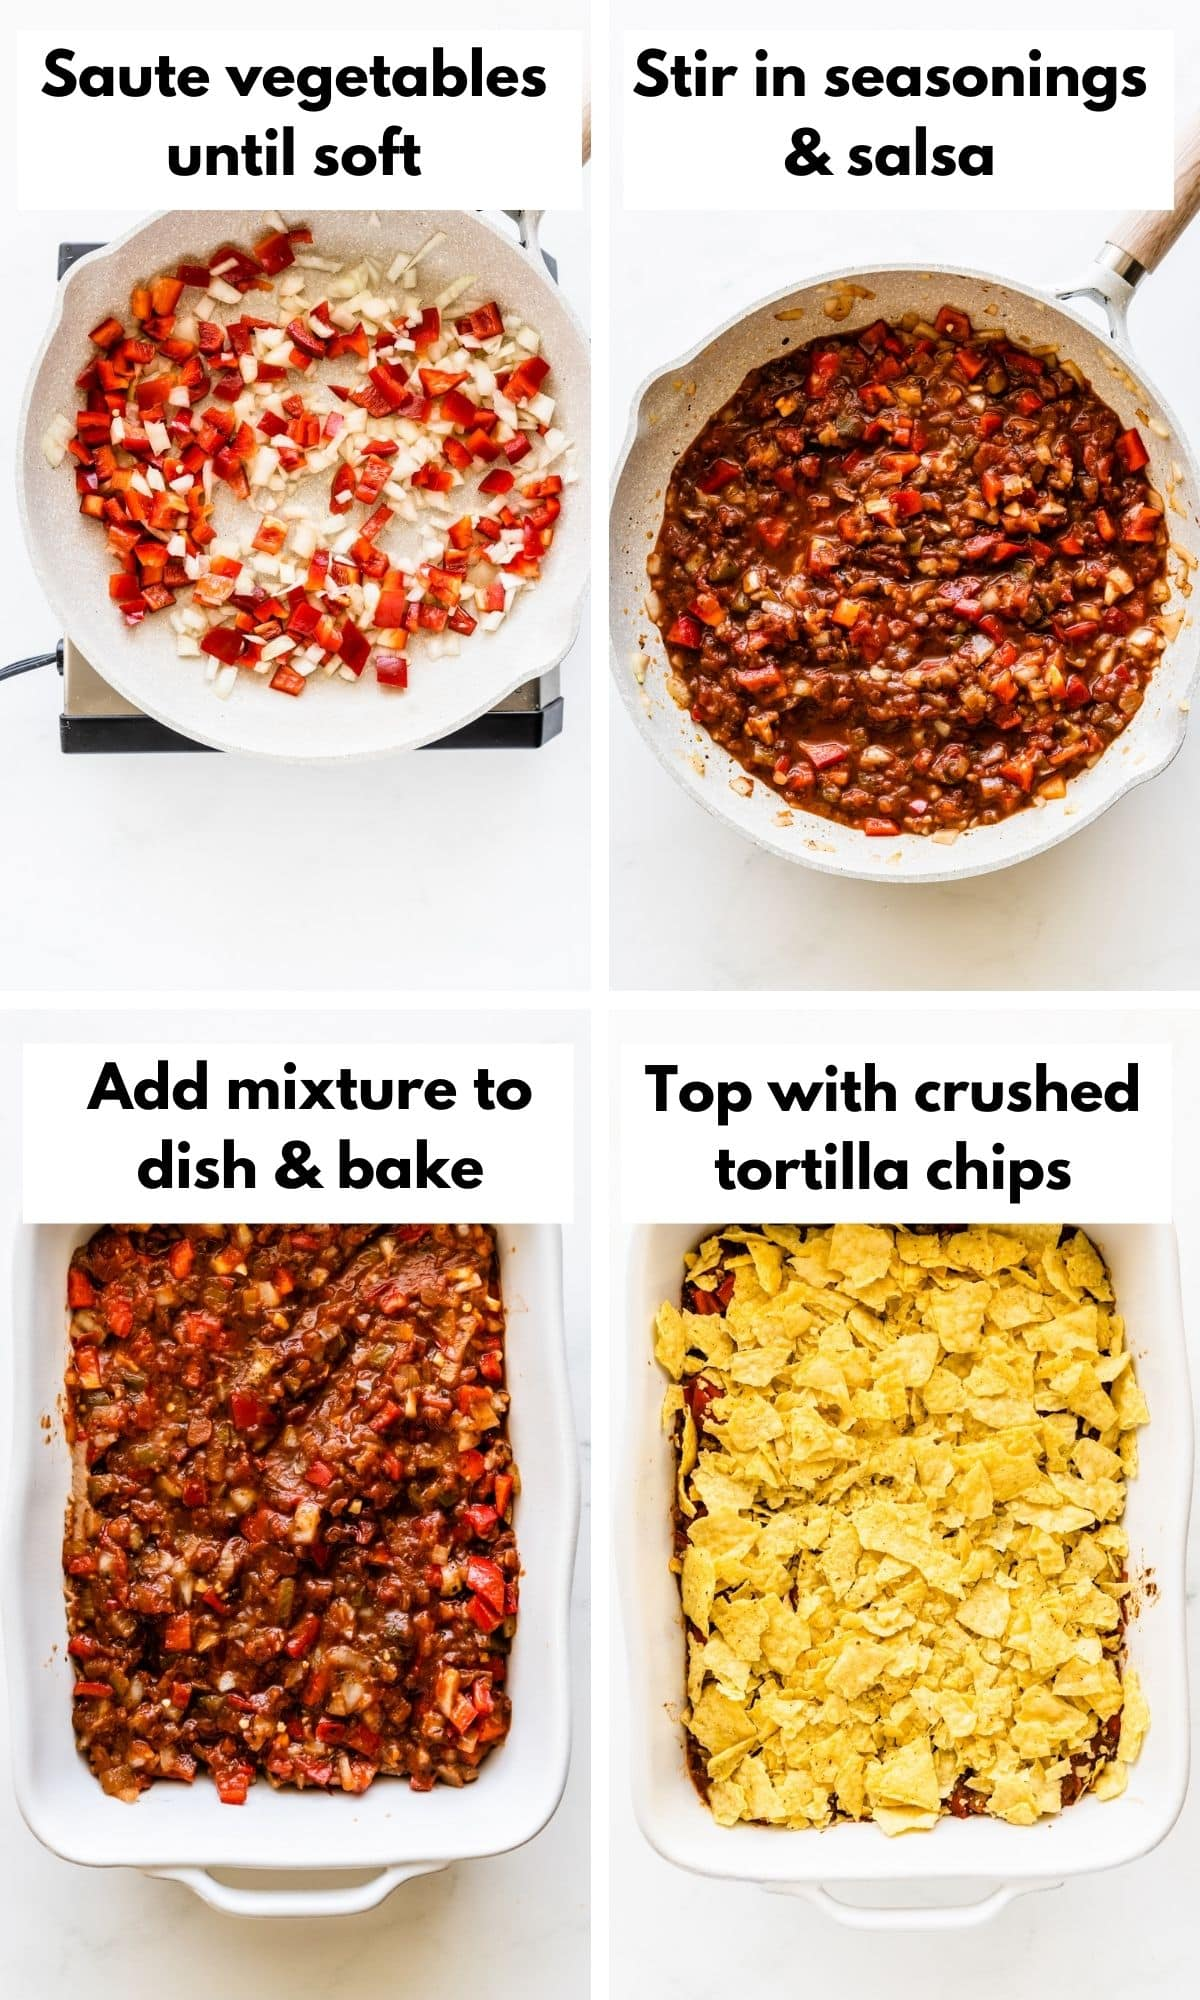 Pictures showing how to make a mexican casserole